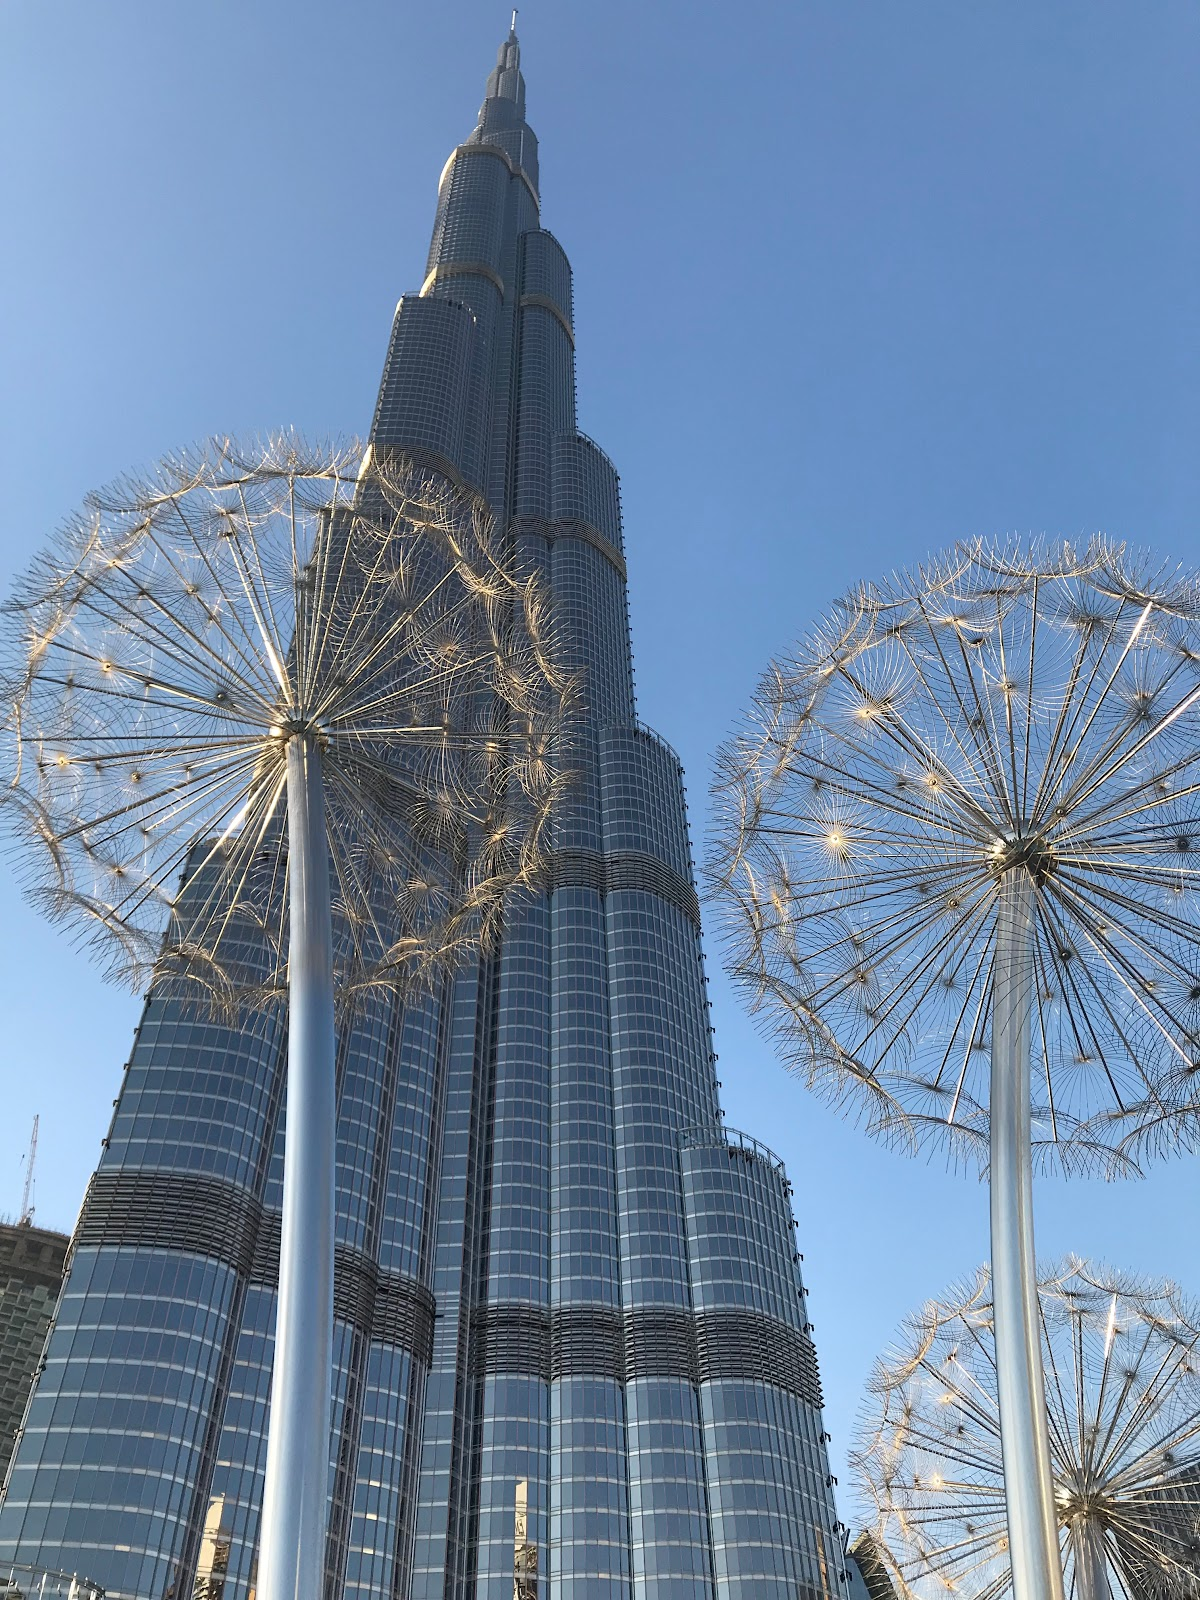 At the base of the Burj Khalifa is my personal favourite attraction in Dubai,  the Dubai Fountain Show. Every evening at half hourly intervals, ...